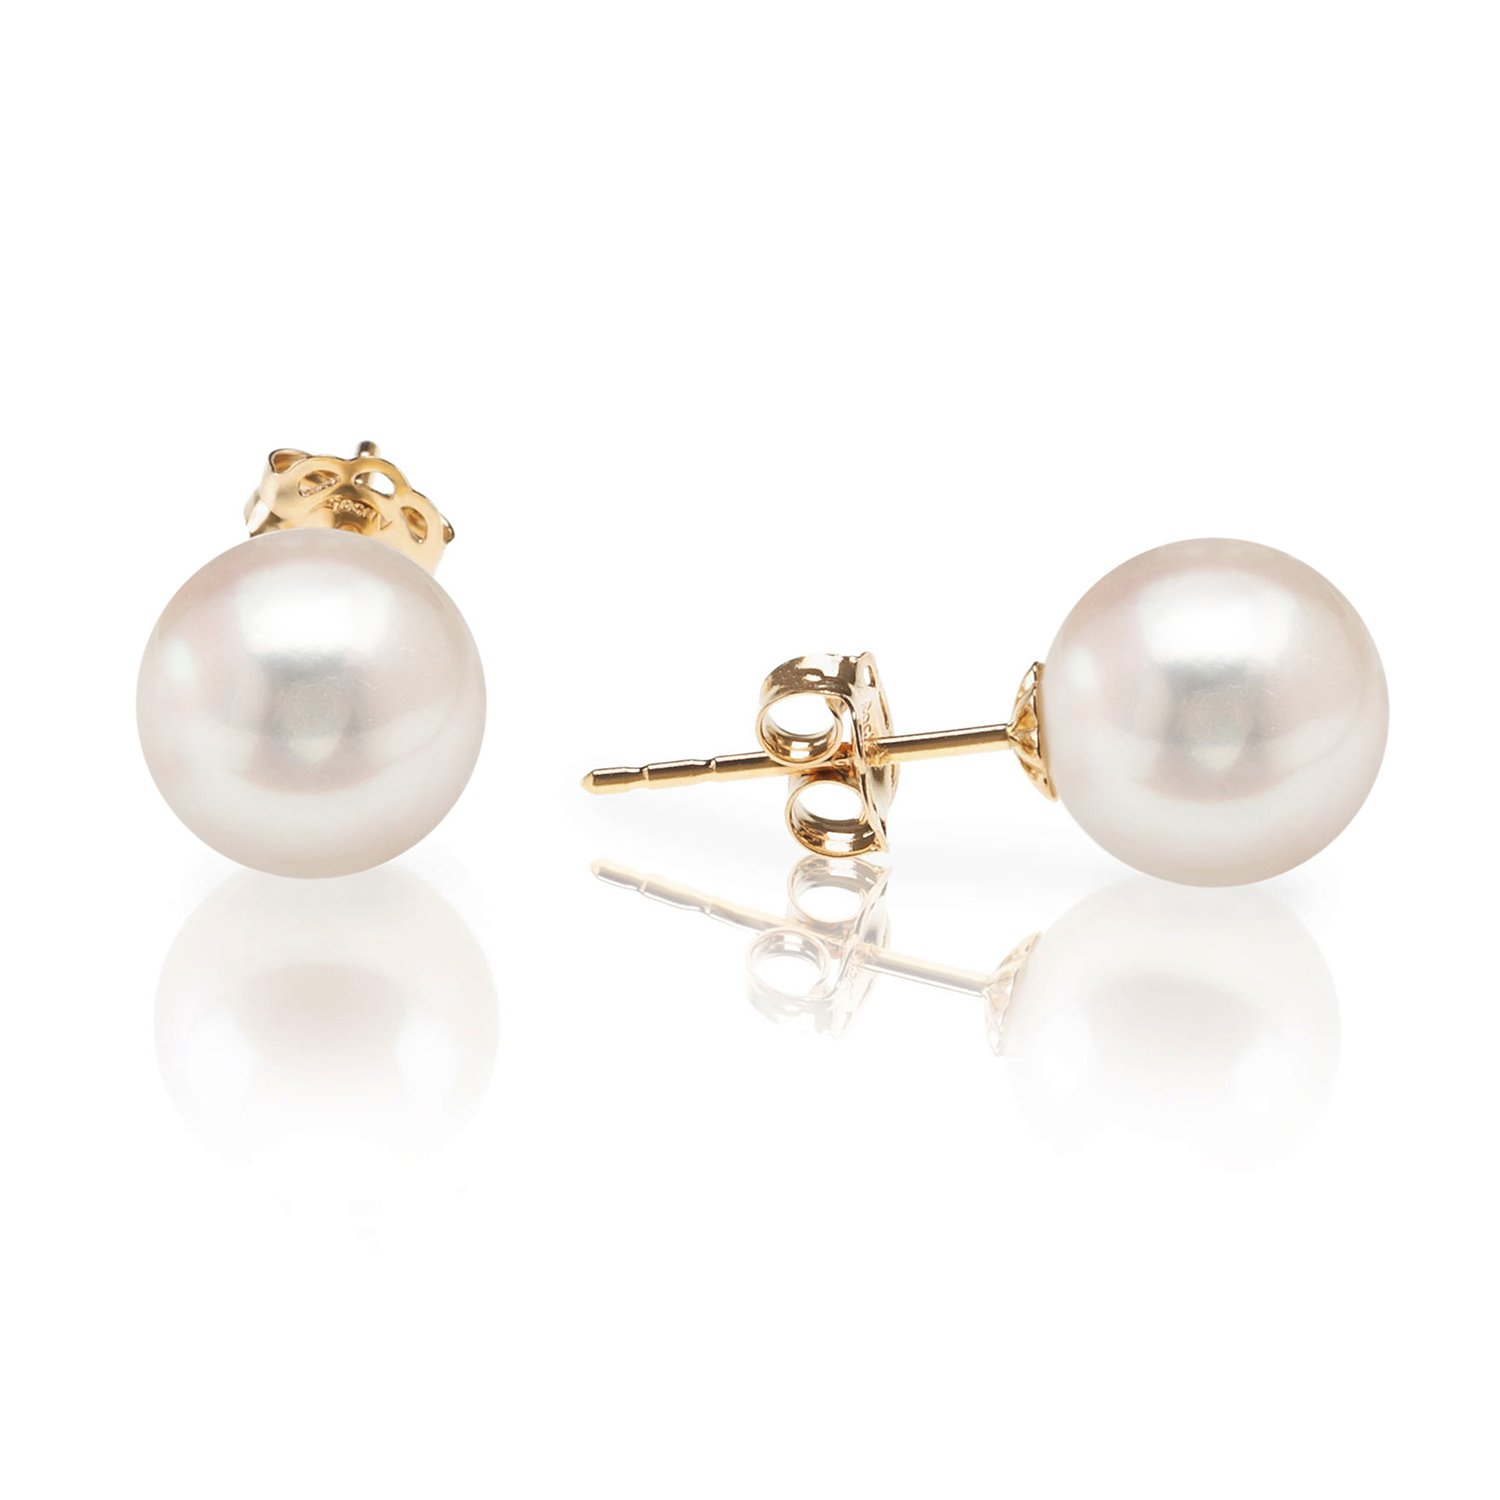 PAVOI 14K Yellow Gold Freshwater Cultured Round Pearl Stud Earrings - Handpicked AAA Quality - 10mm